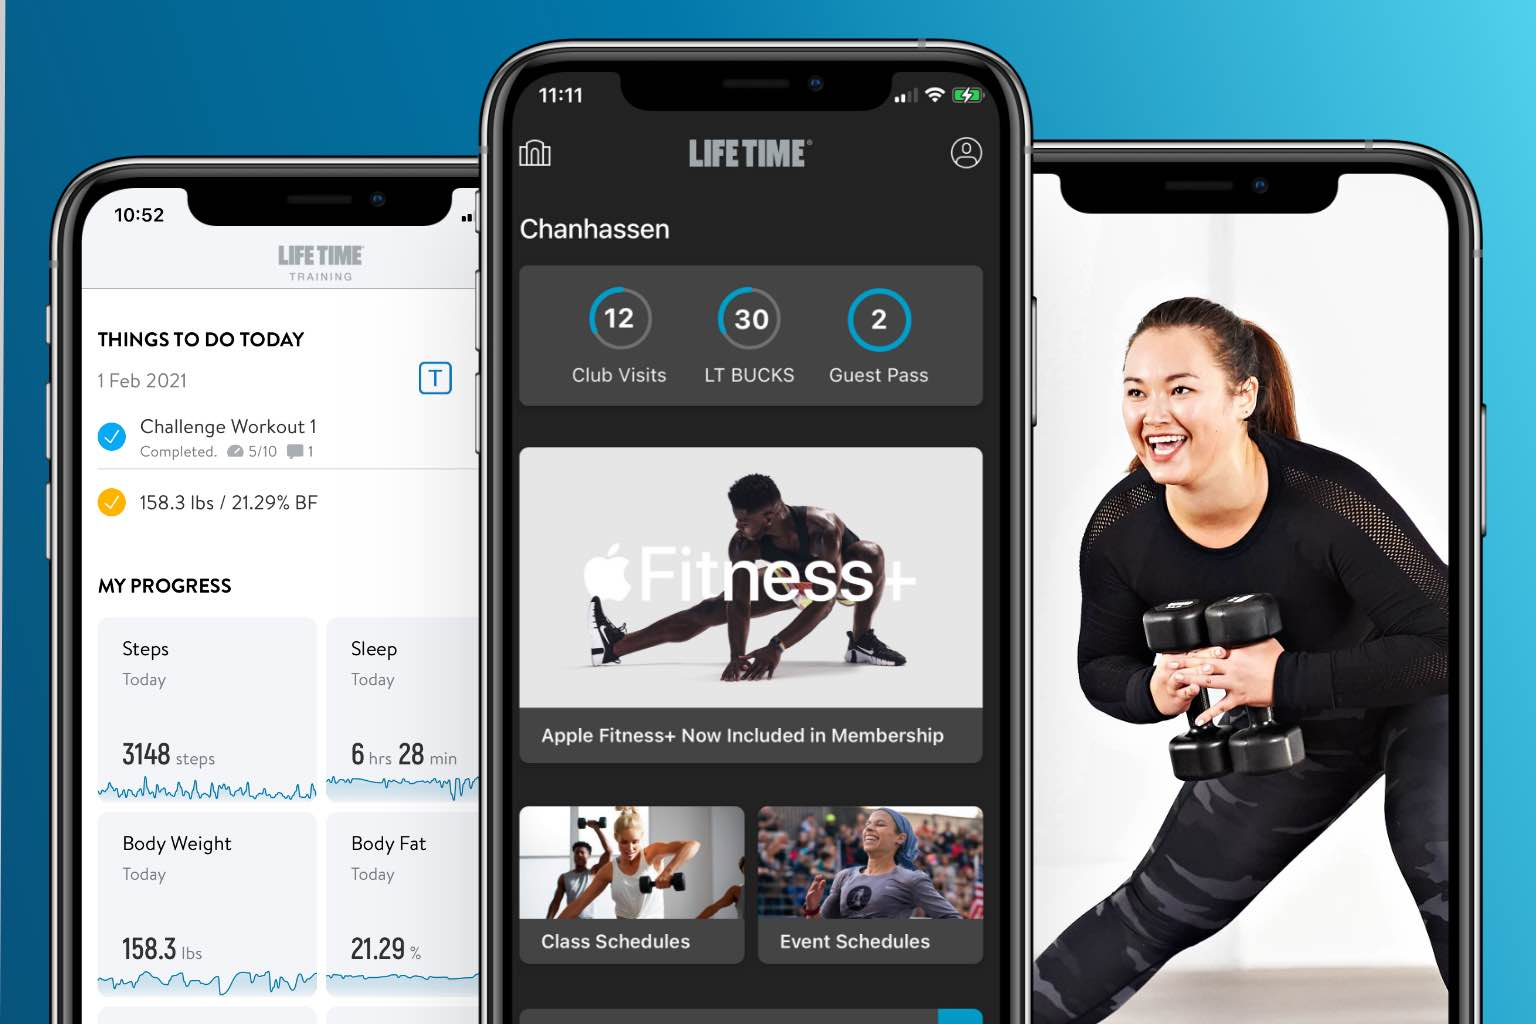 A phone screen displays a smiling woman in exercise gear working out with dumbbells